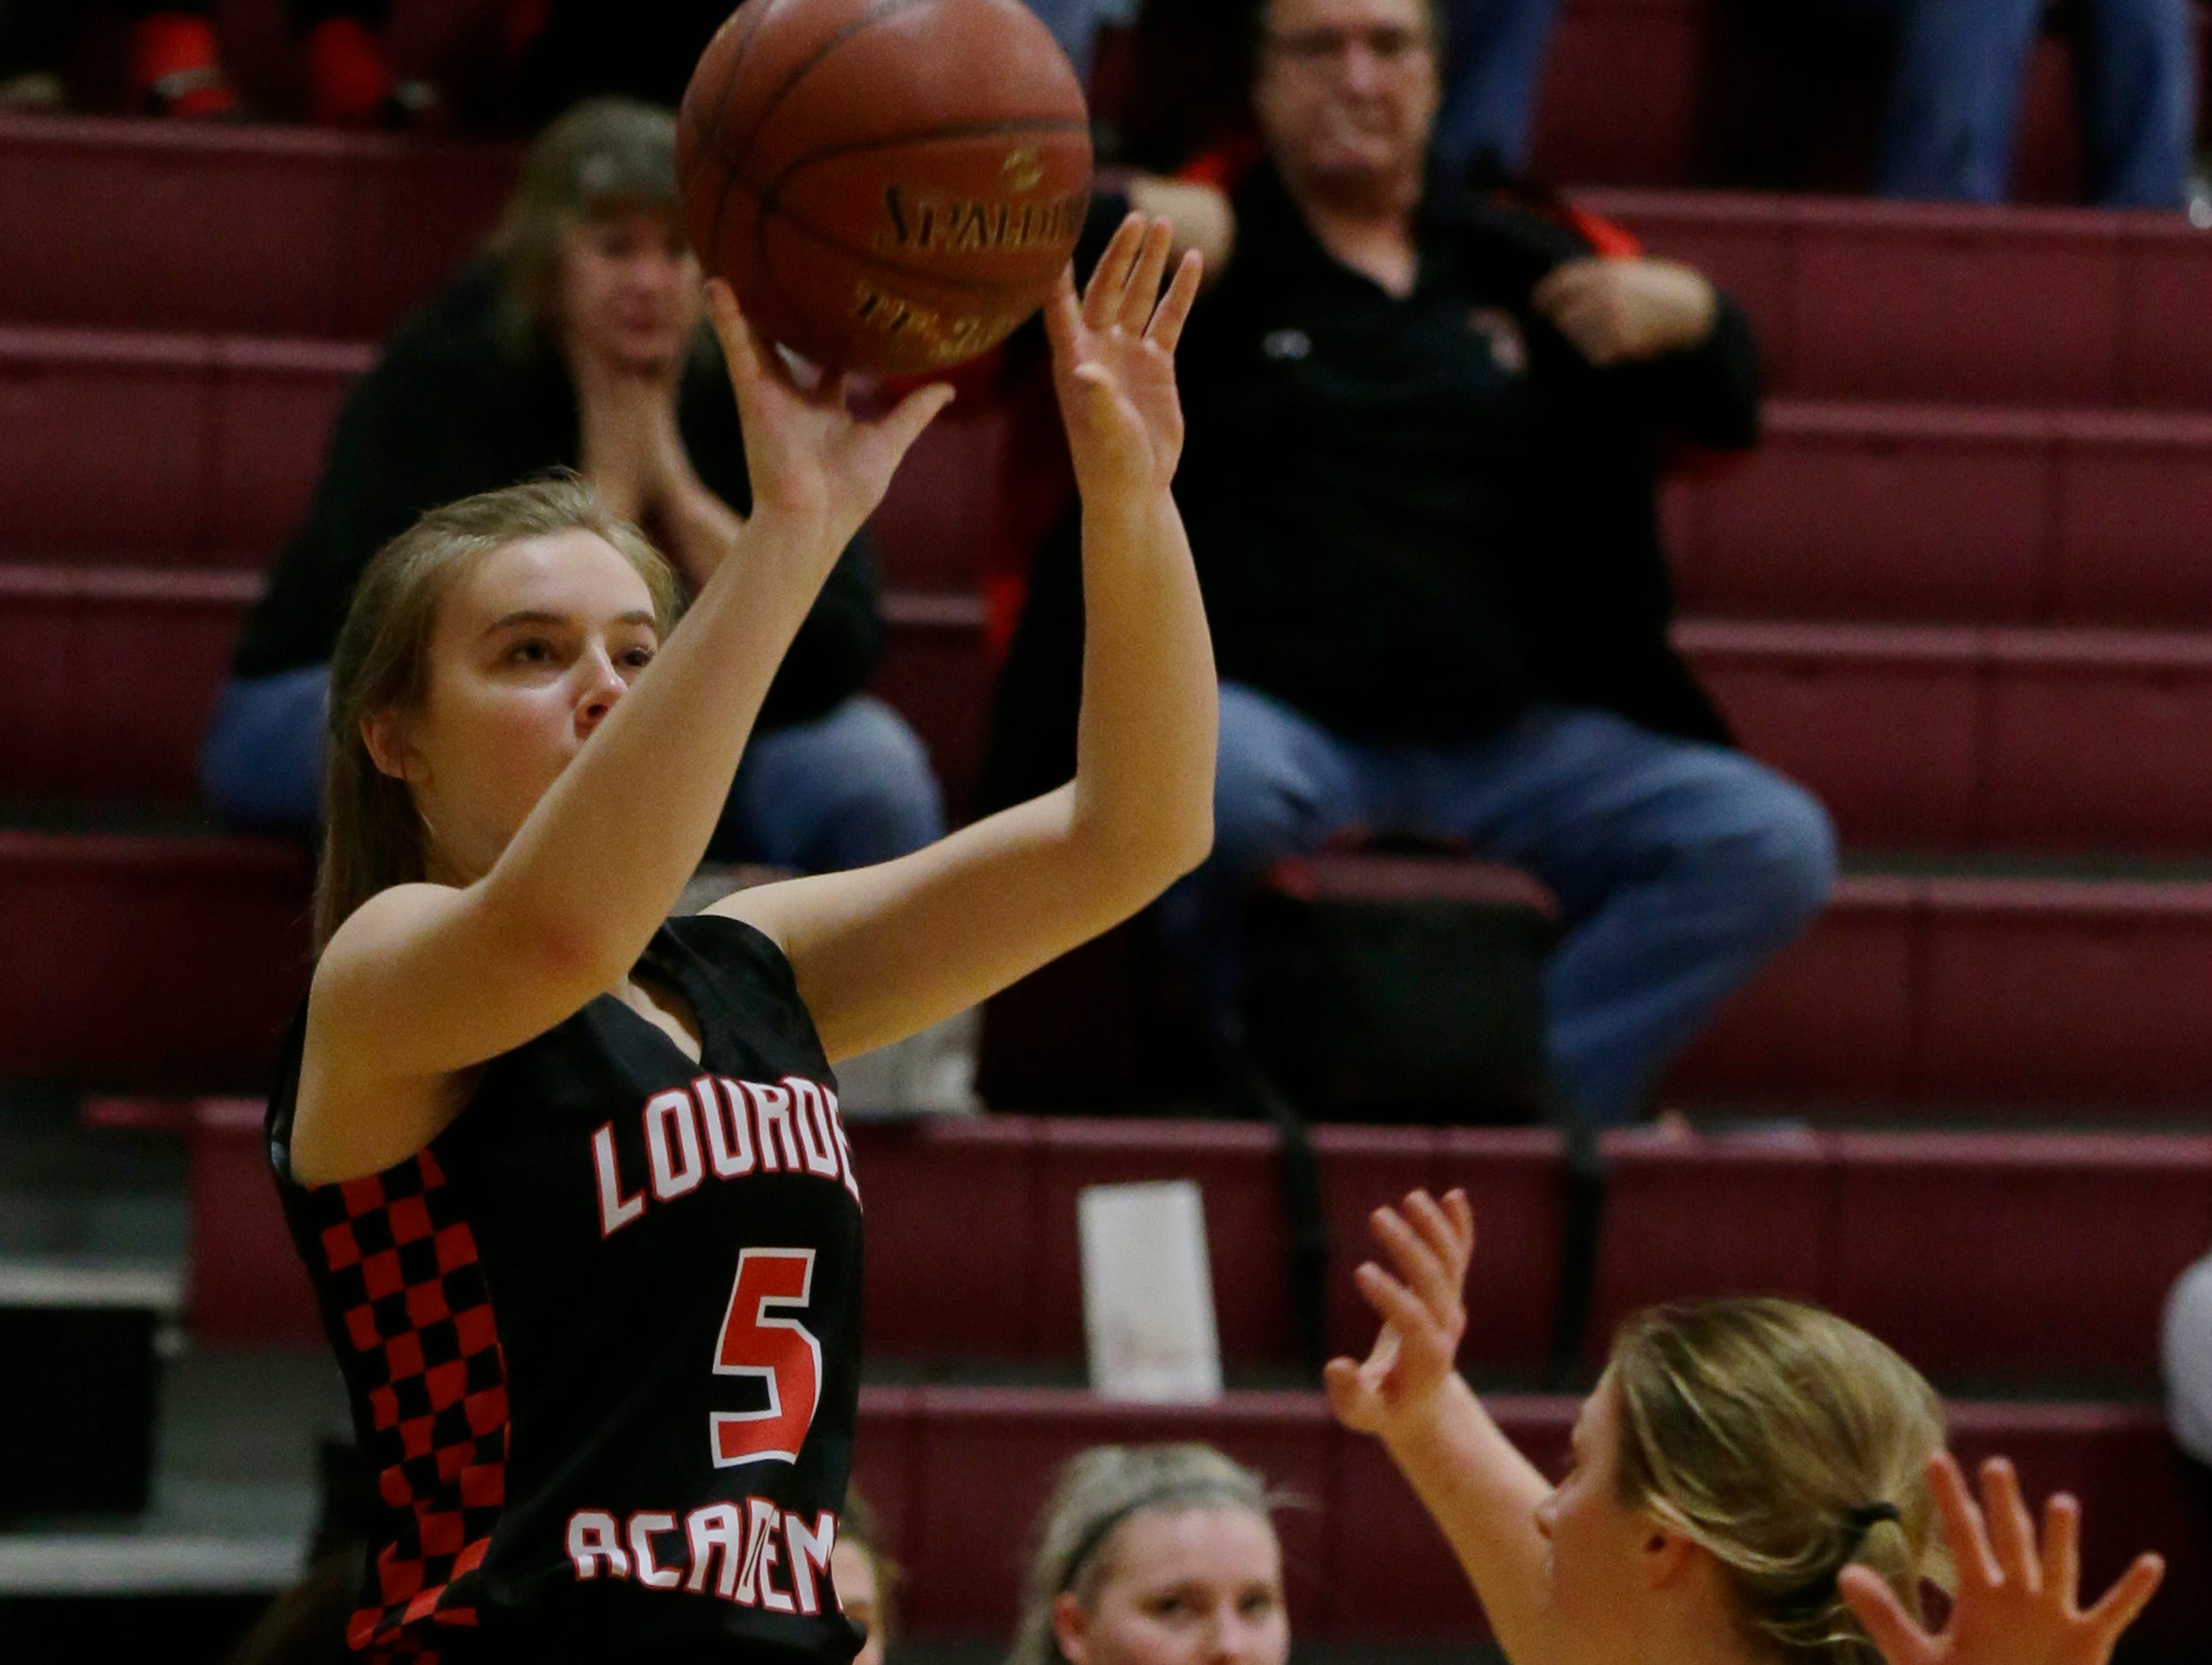 Lourdes Academy's Lauren Hamill puts up a three-point shot. Winneconne Wolves played Lourdes Academy Knights, Tuesday, Dec. 11, 2018.  Winneconne won 56 - 44.